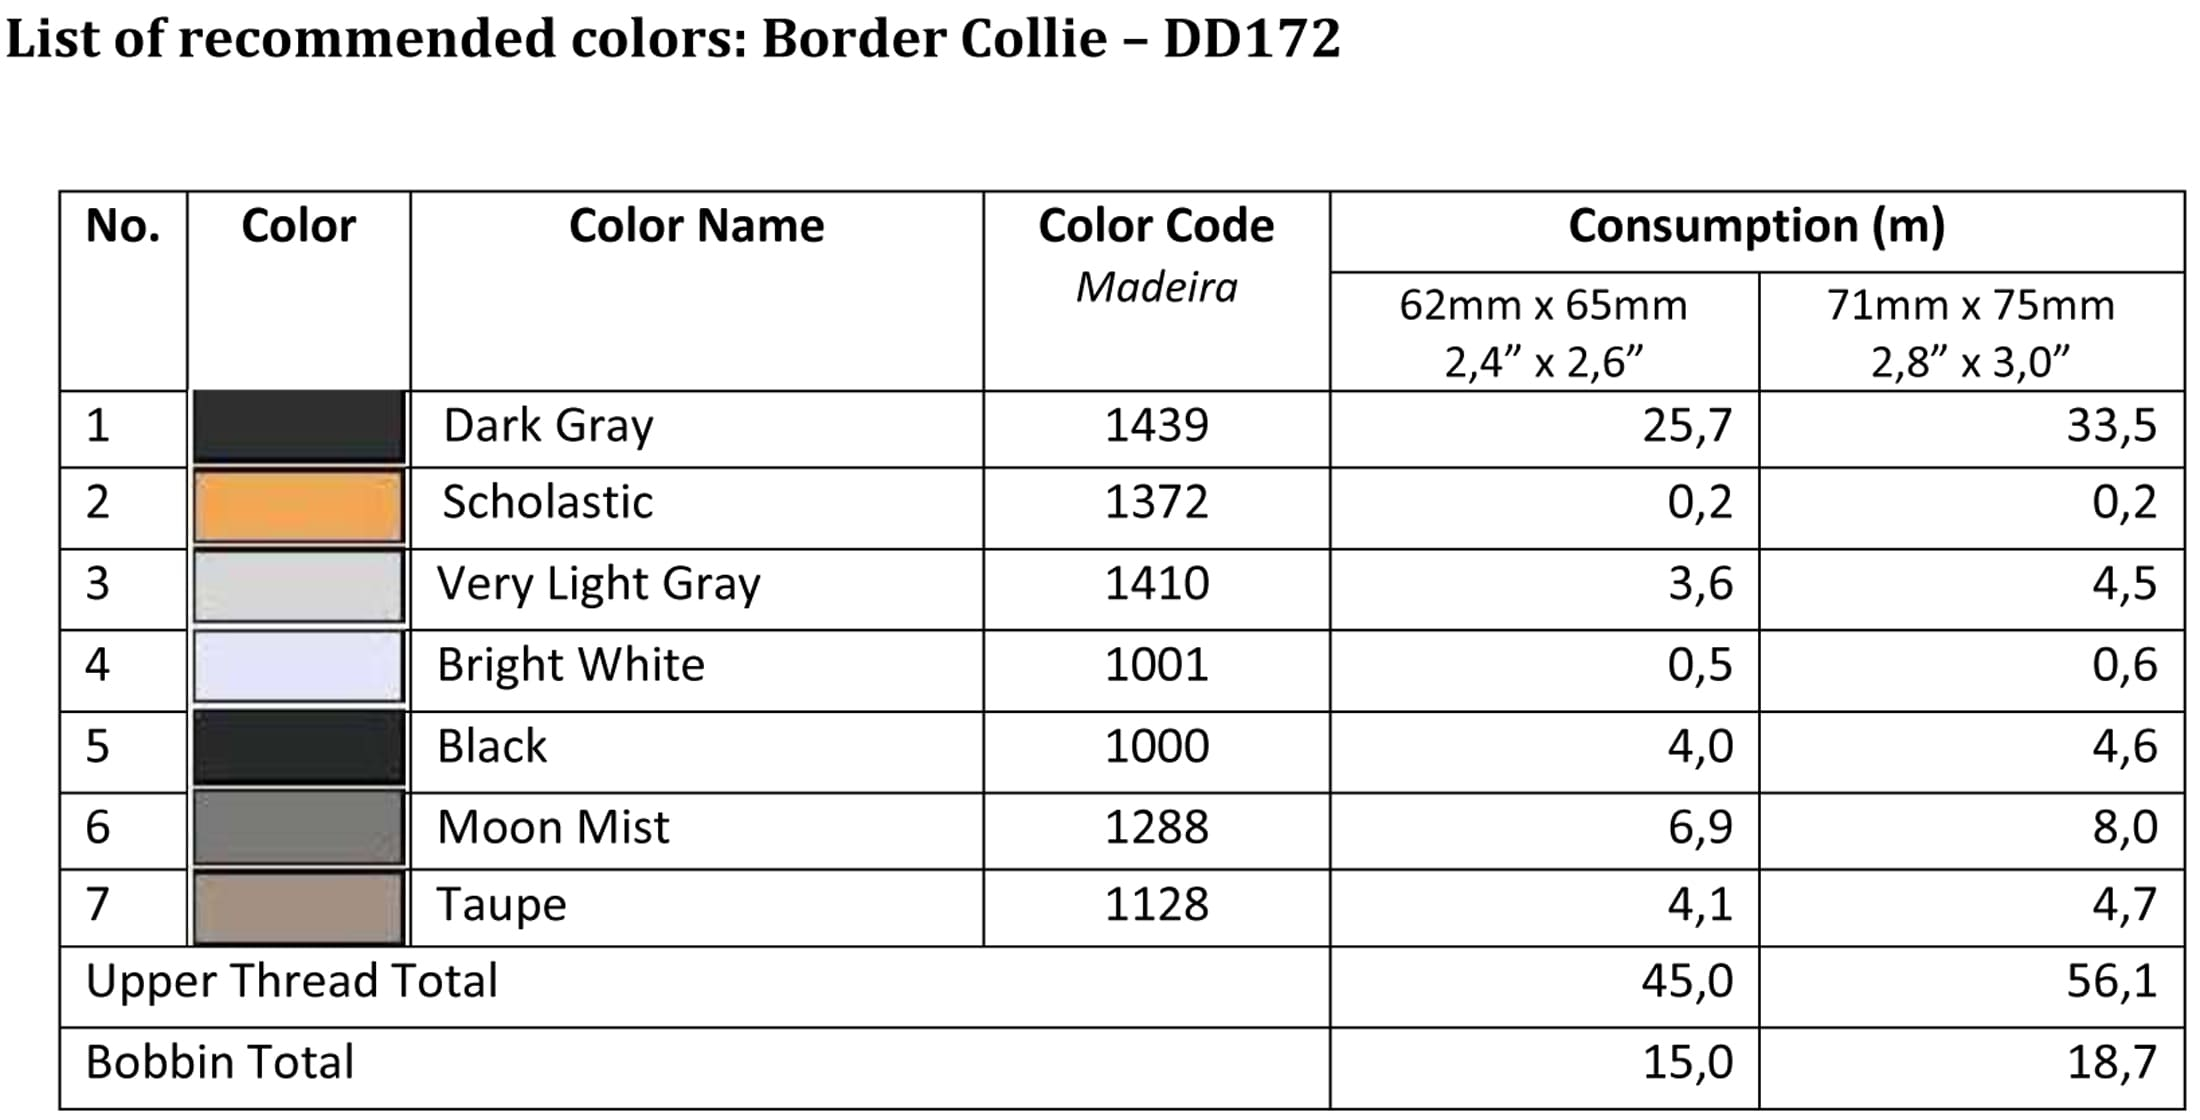 List of recommended colors - DD172